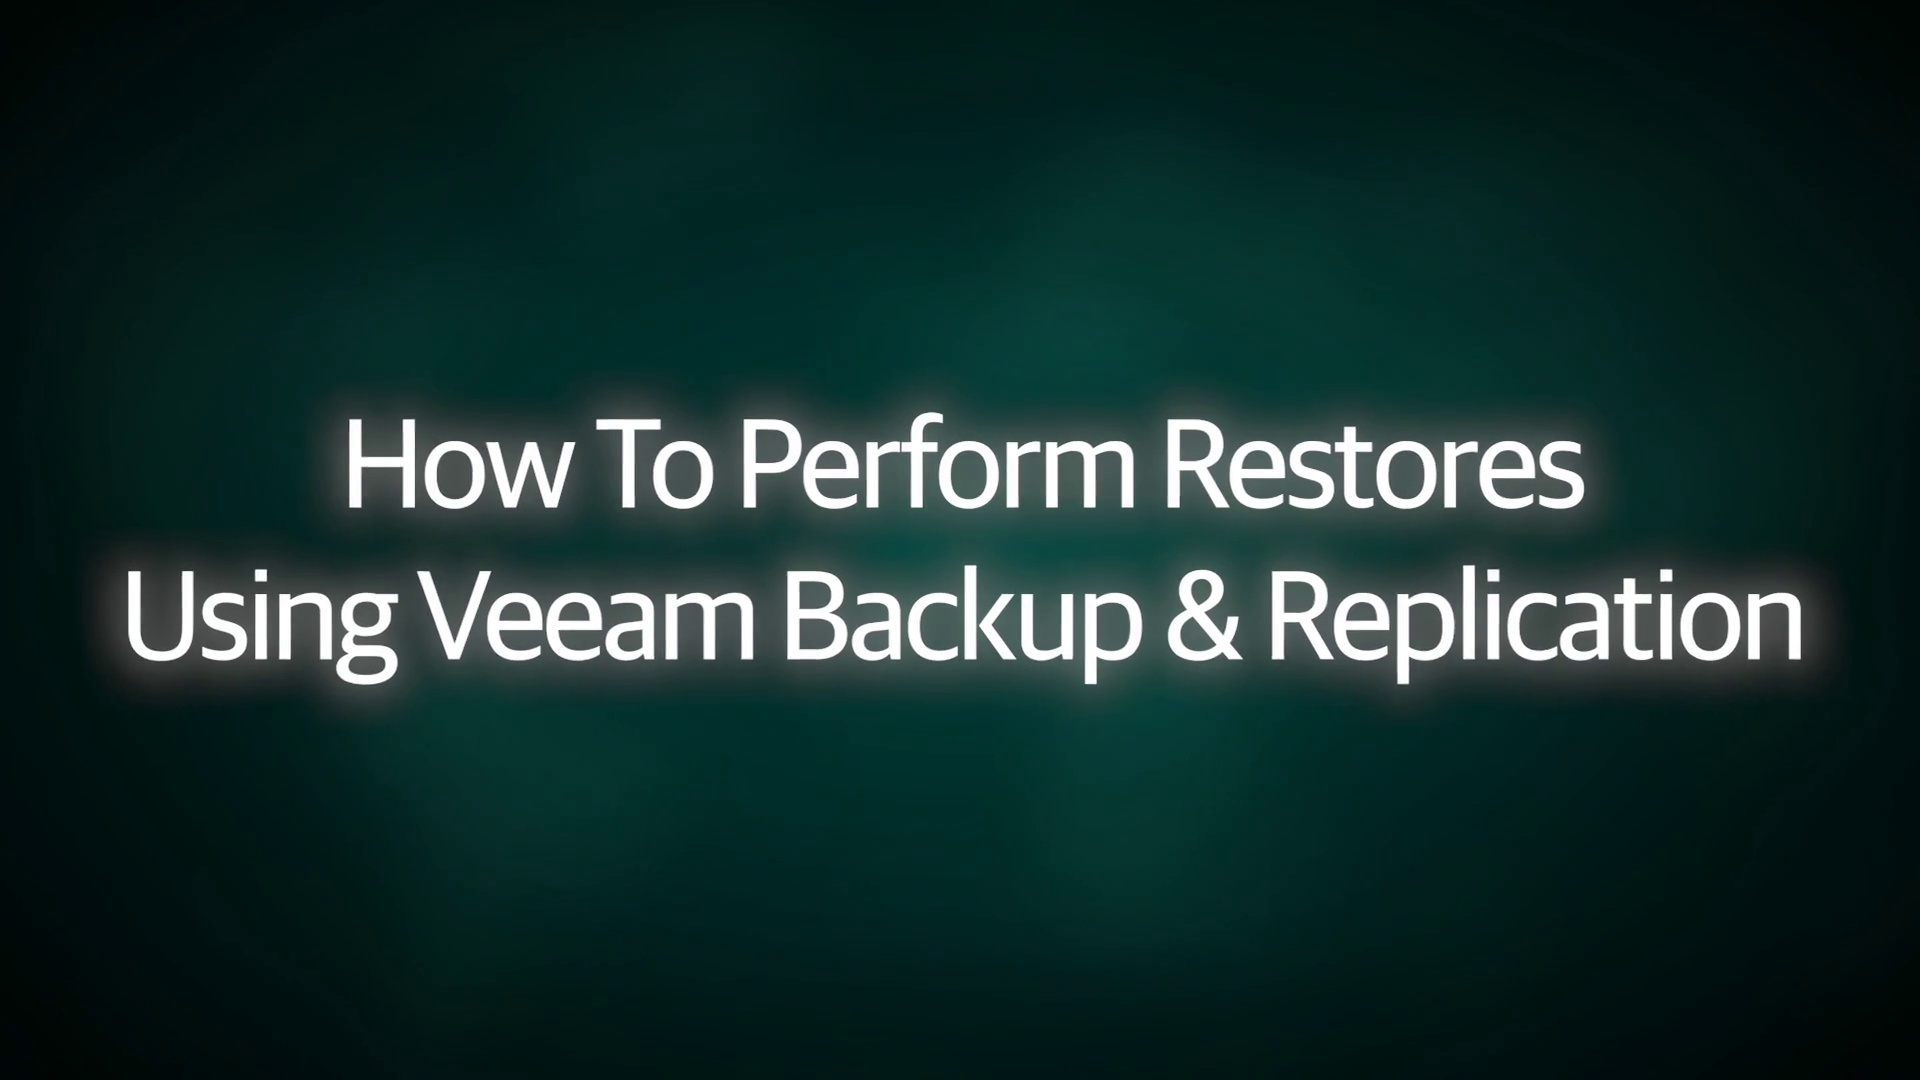 How to Perform Restores using Veeam Backup & Replication